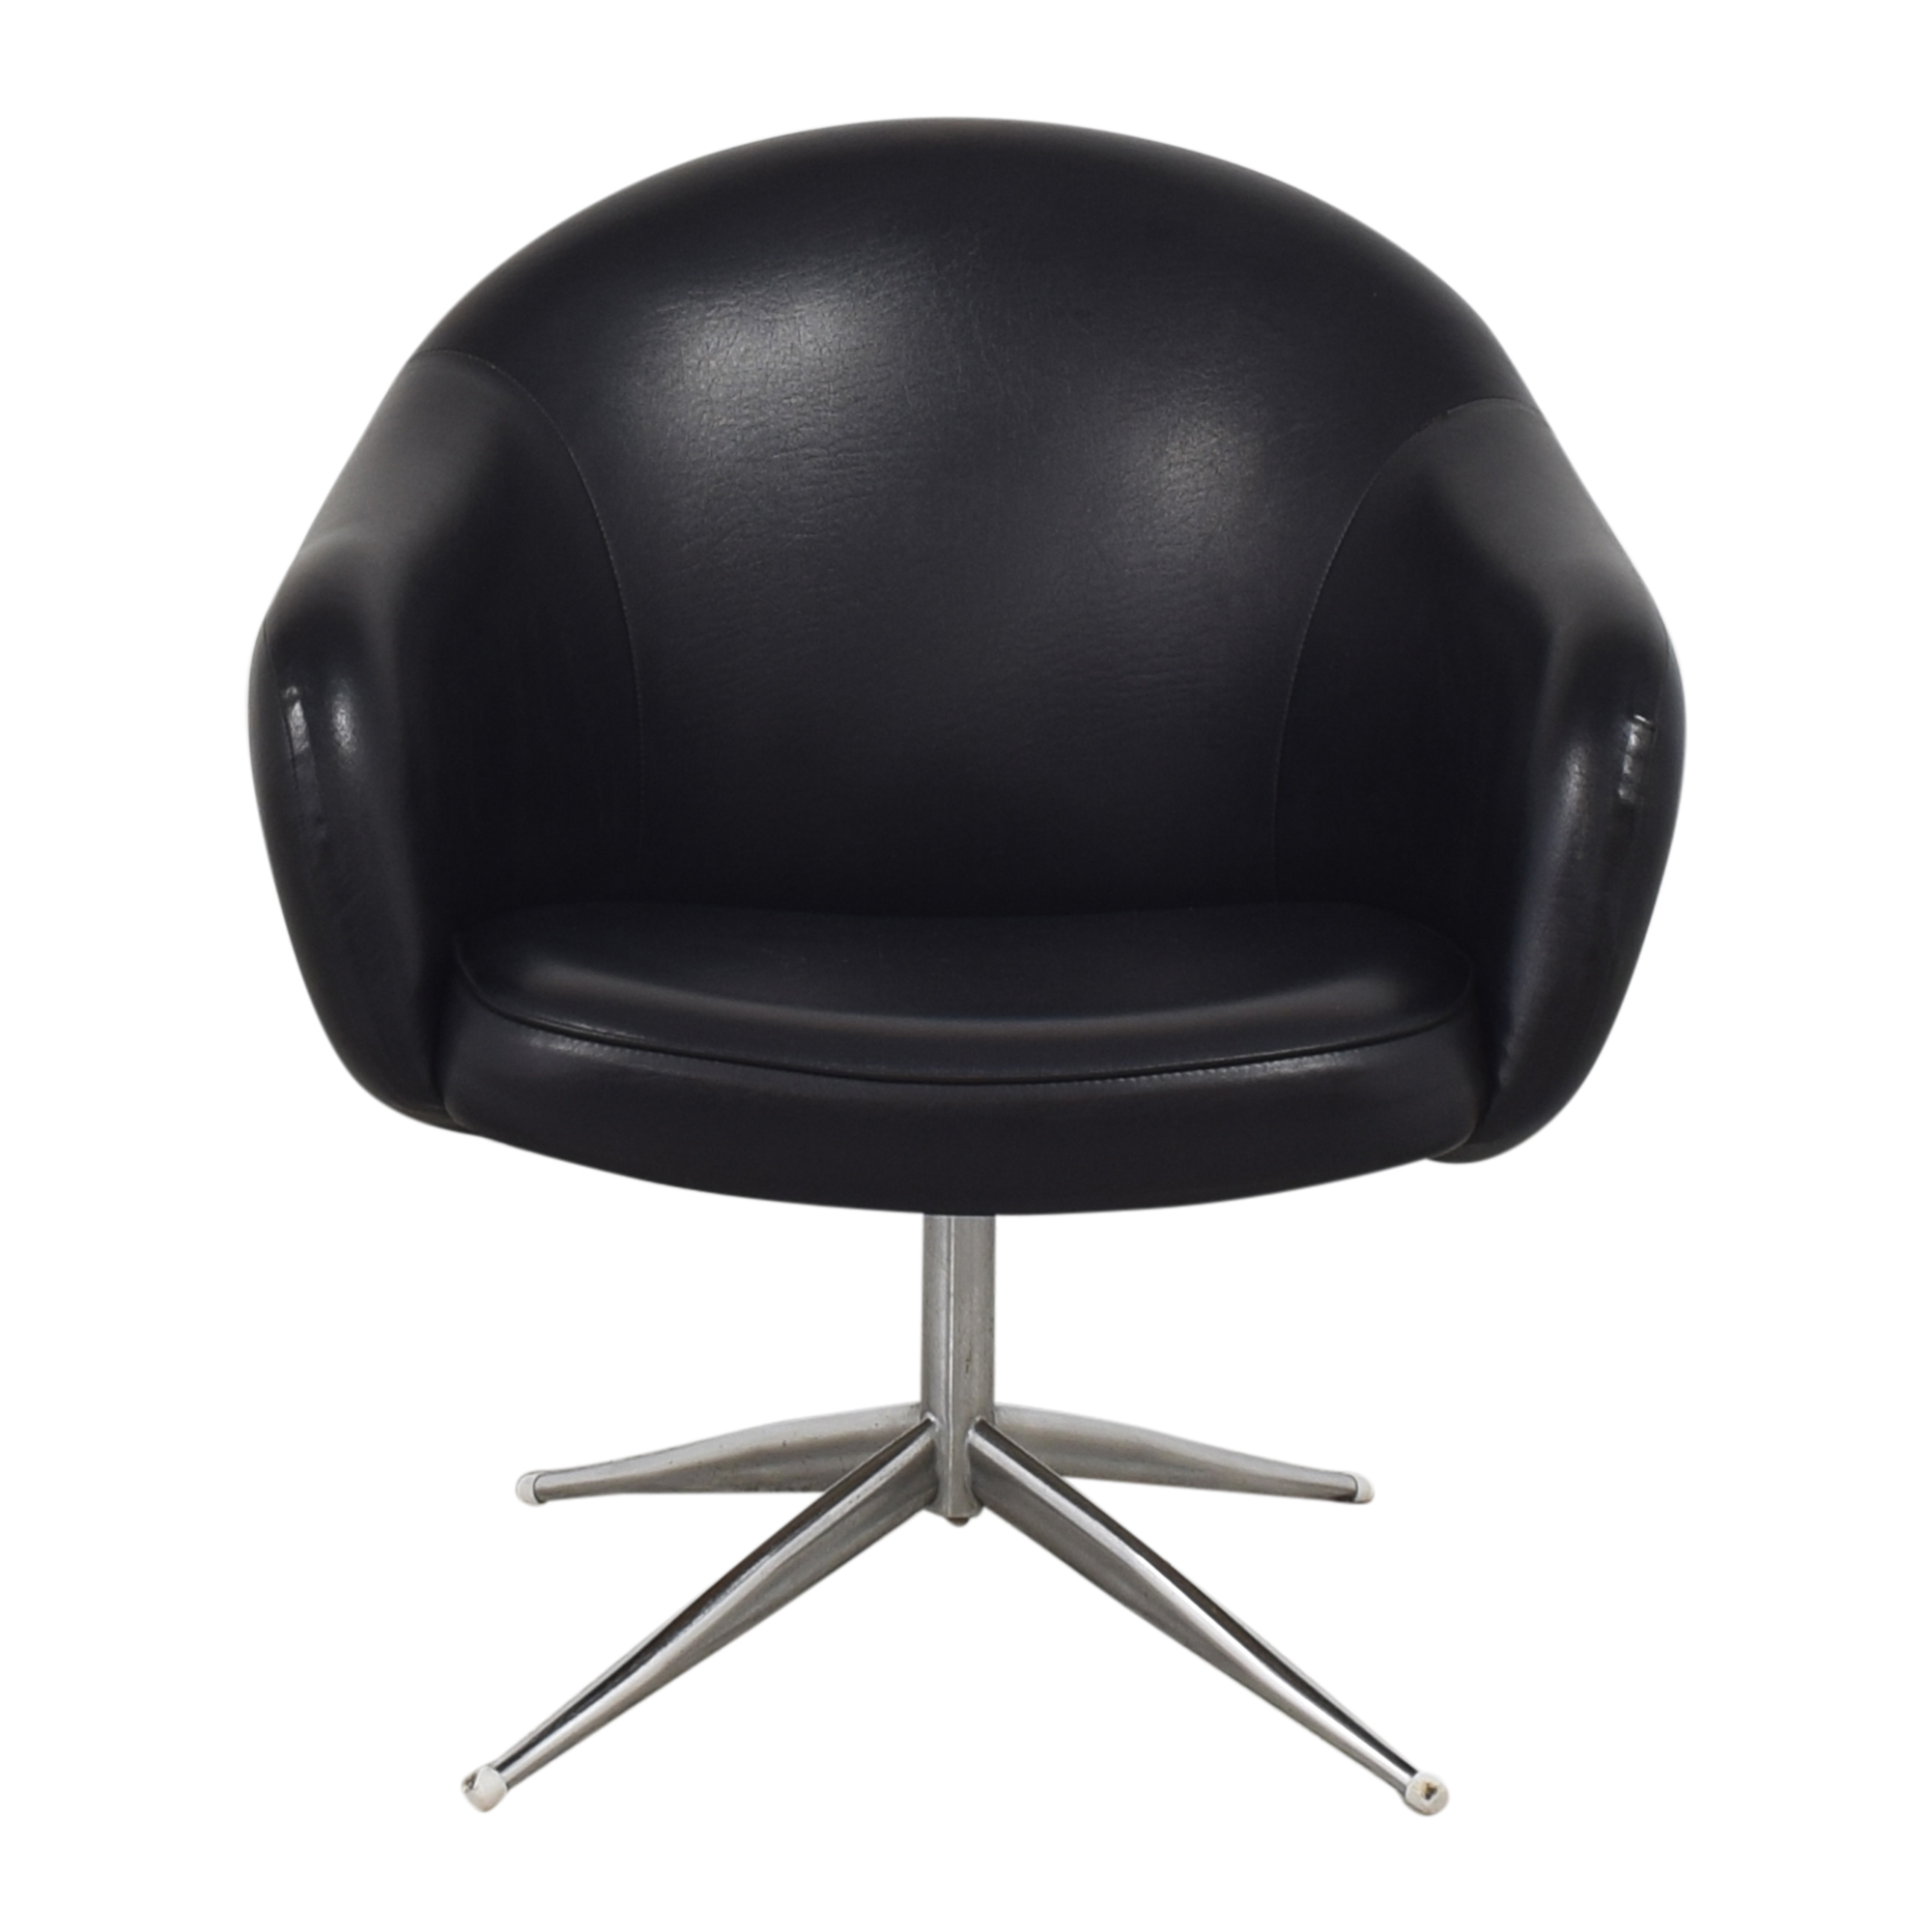 Viko by Baumritter Viko by Baumritter Mid Century Accent Chair dimensions